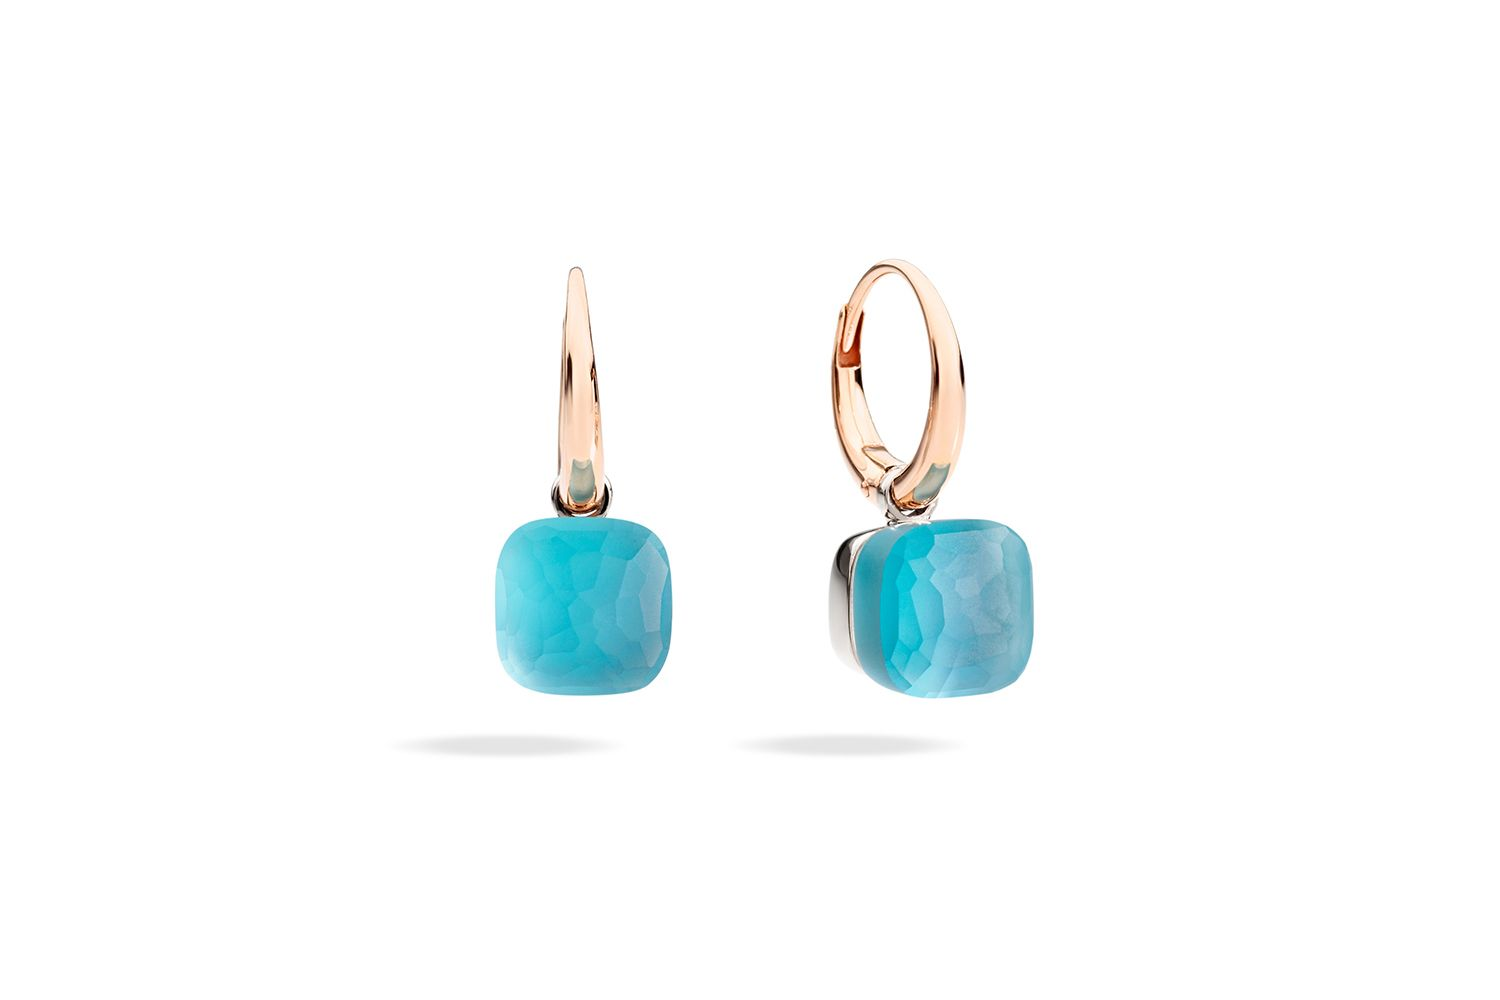 NUDO-GELE-earrings-in-rose-gold-with-blue-topaz-mother-of-pearl-turquoise-by-Pomellato